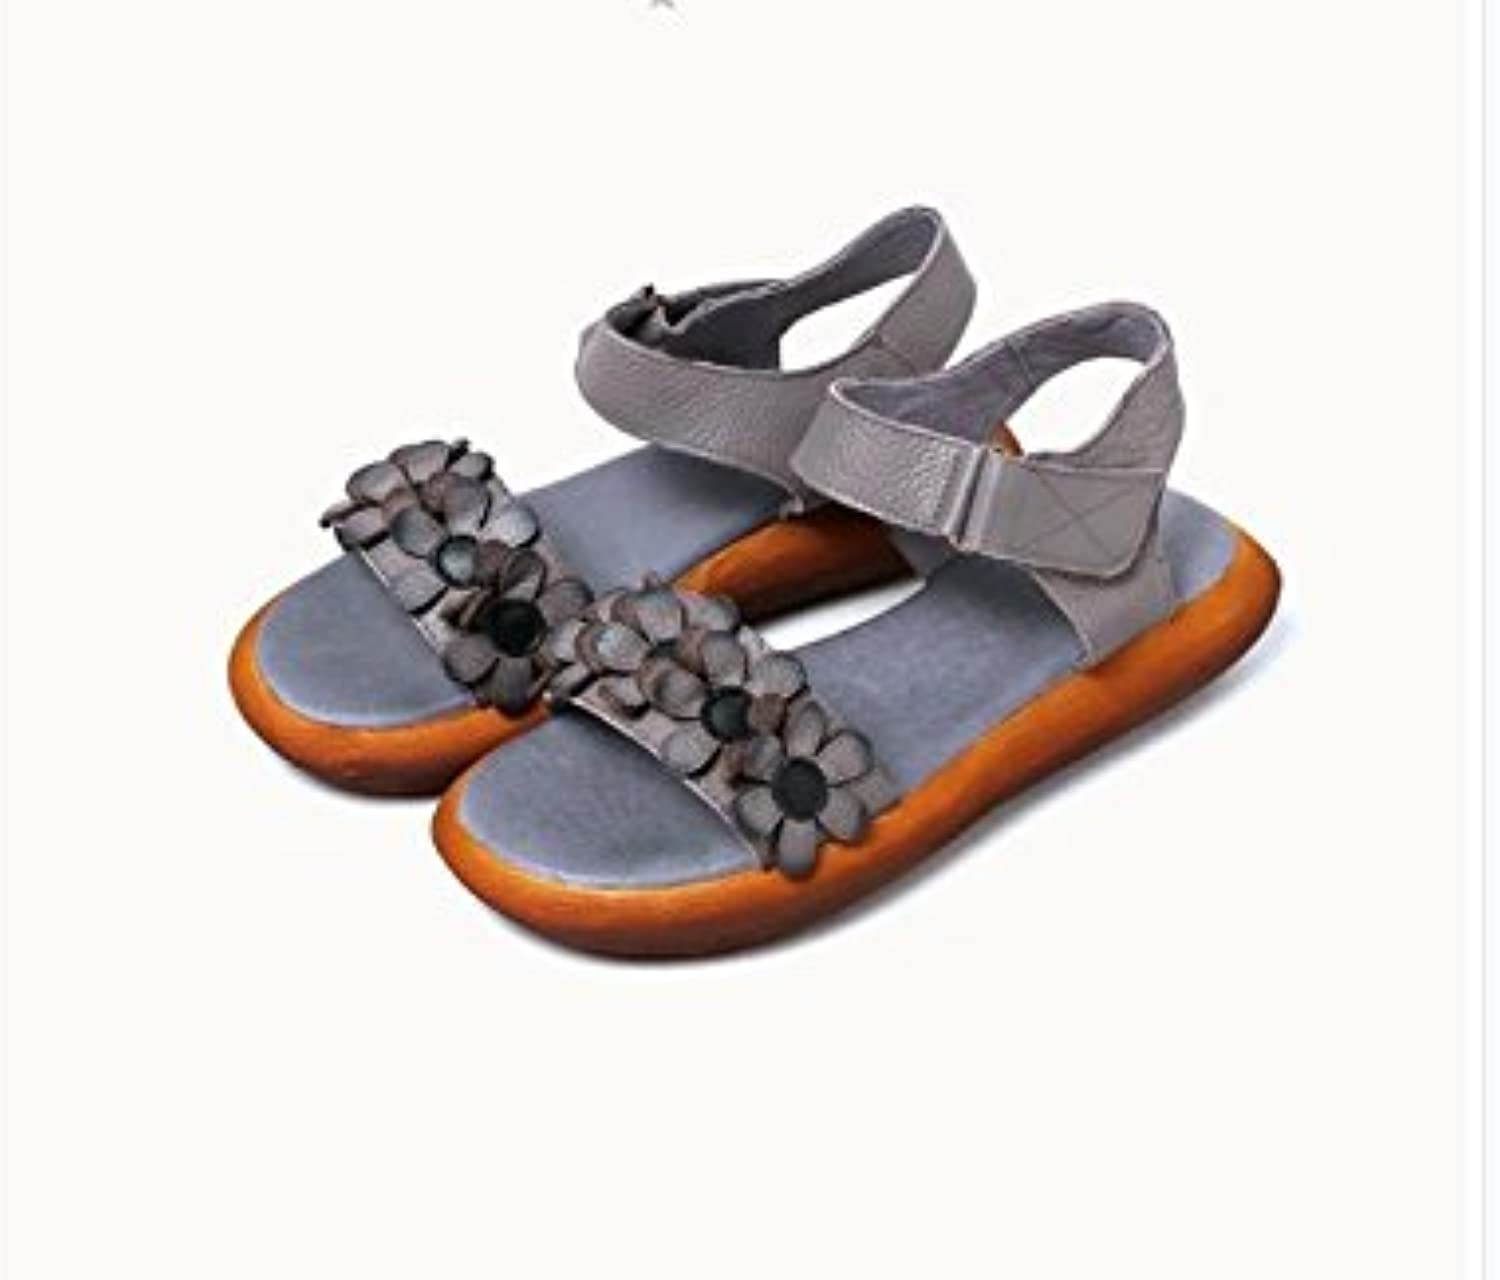 WHW Women's Spring Summer Fall Leatherette Party Evening Wedge Heel Sandals,35,Grey